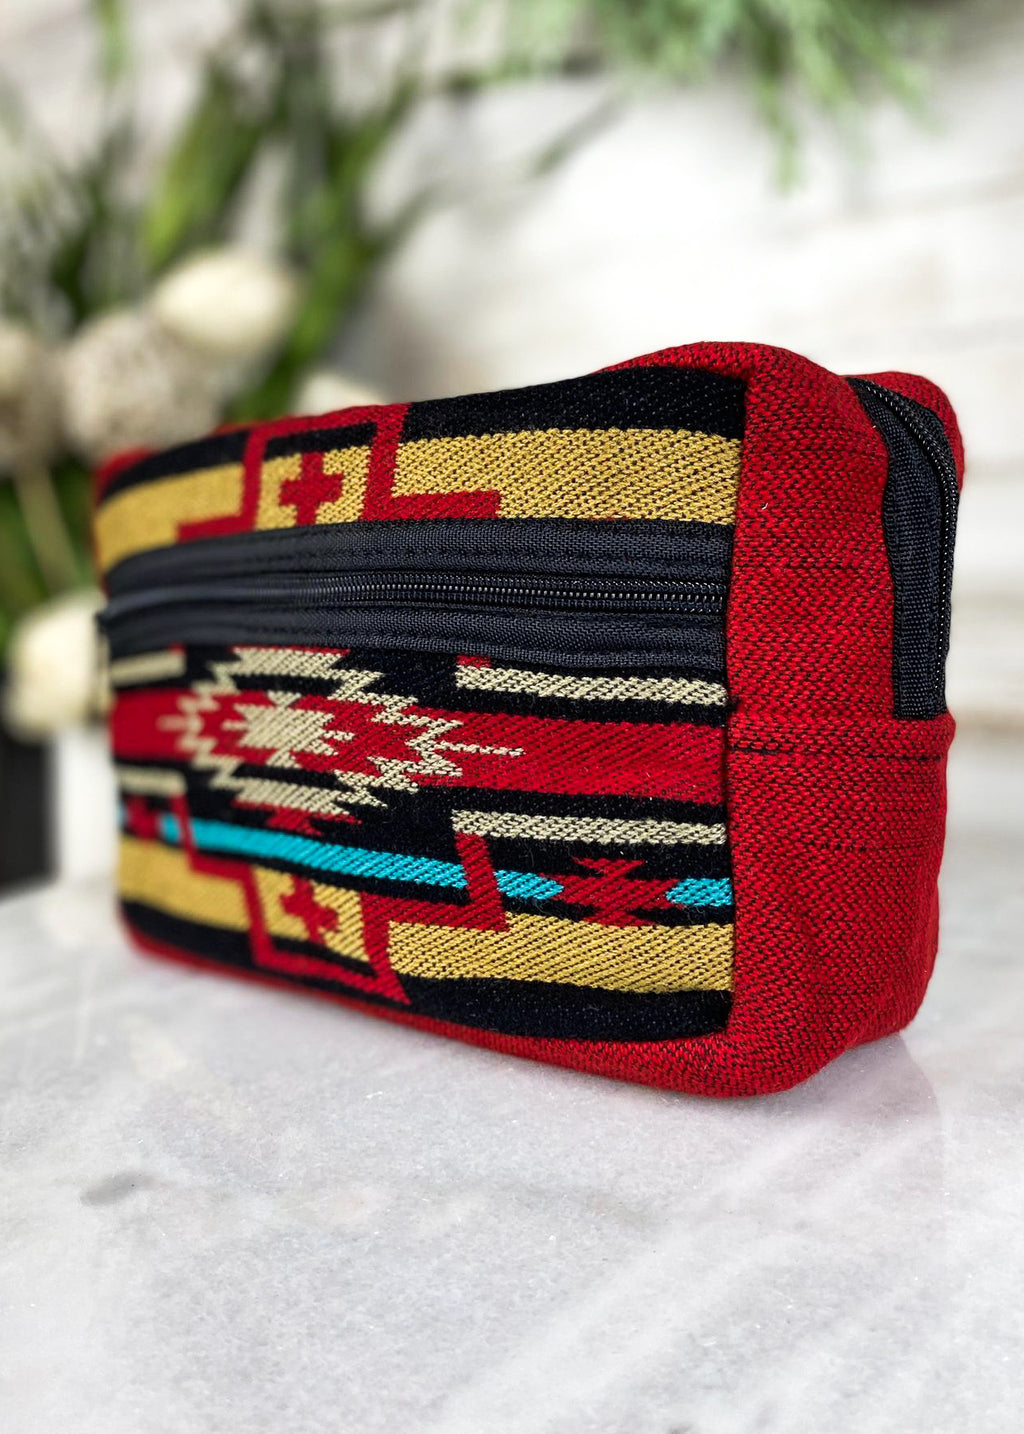 Red and multicolored aztec southwestern cosmetic bag with front zipper pocket, taken inside on white table with floral décor